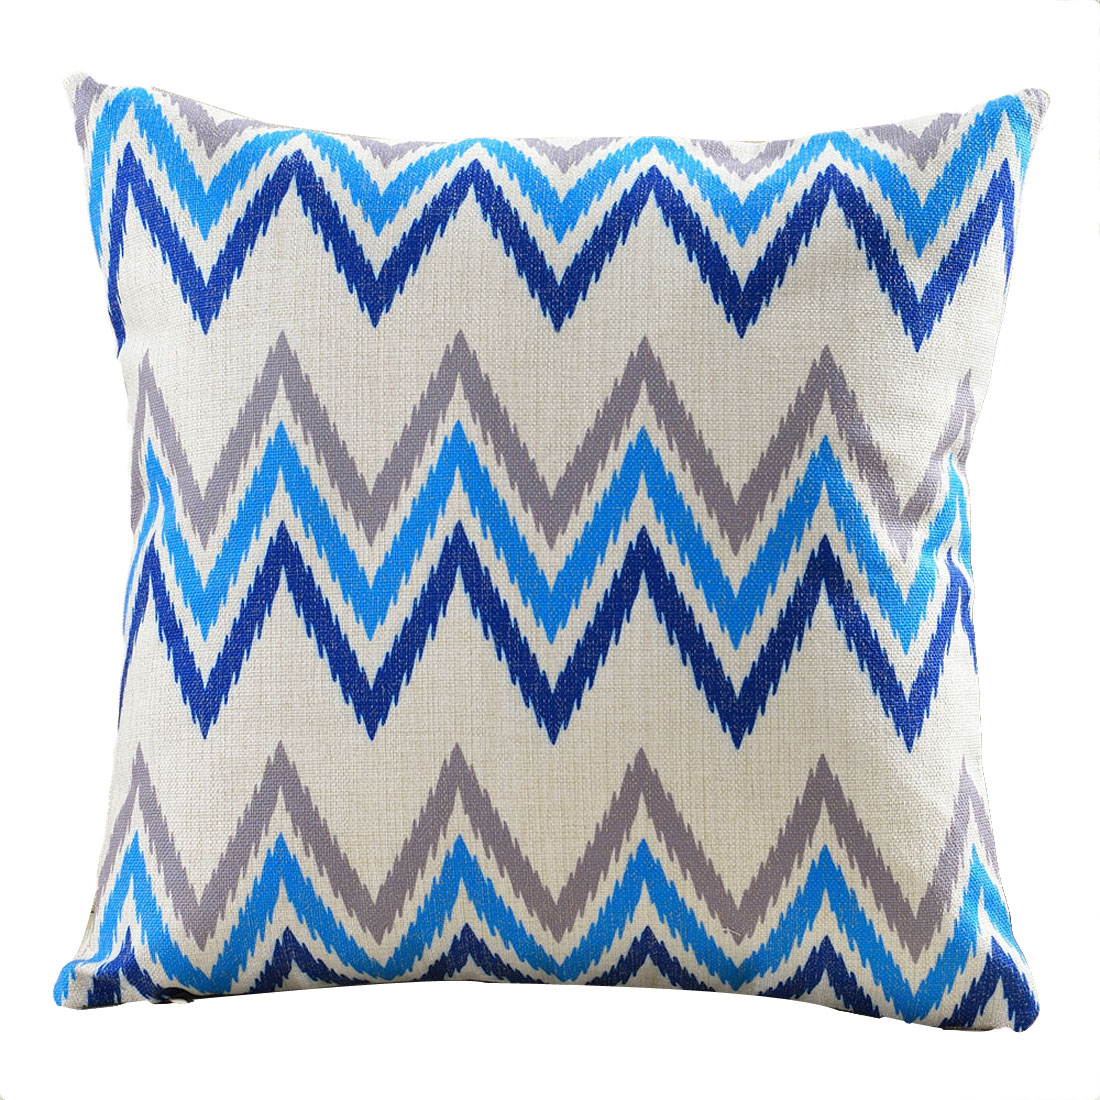 Sofa Cotton Linen Single Side Northern Europe Abstract Style Cushion Pillow Cover